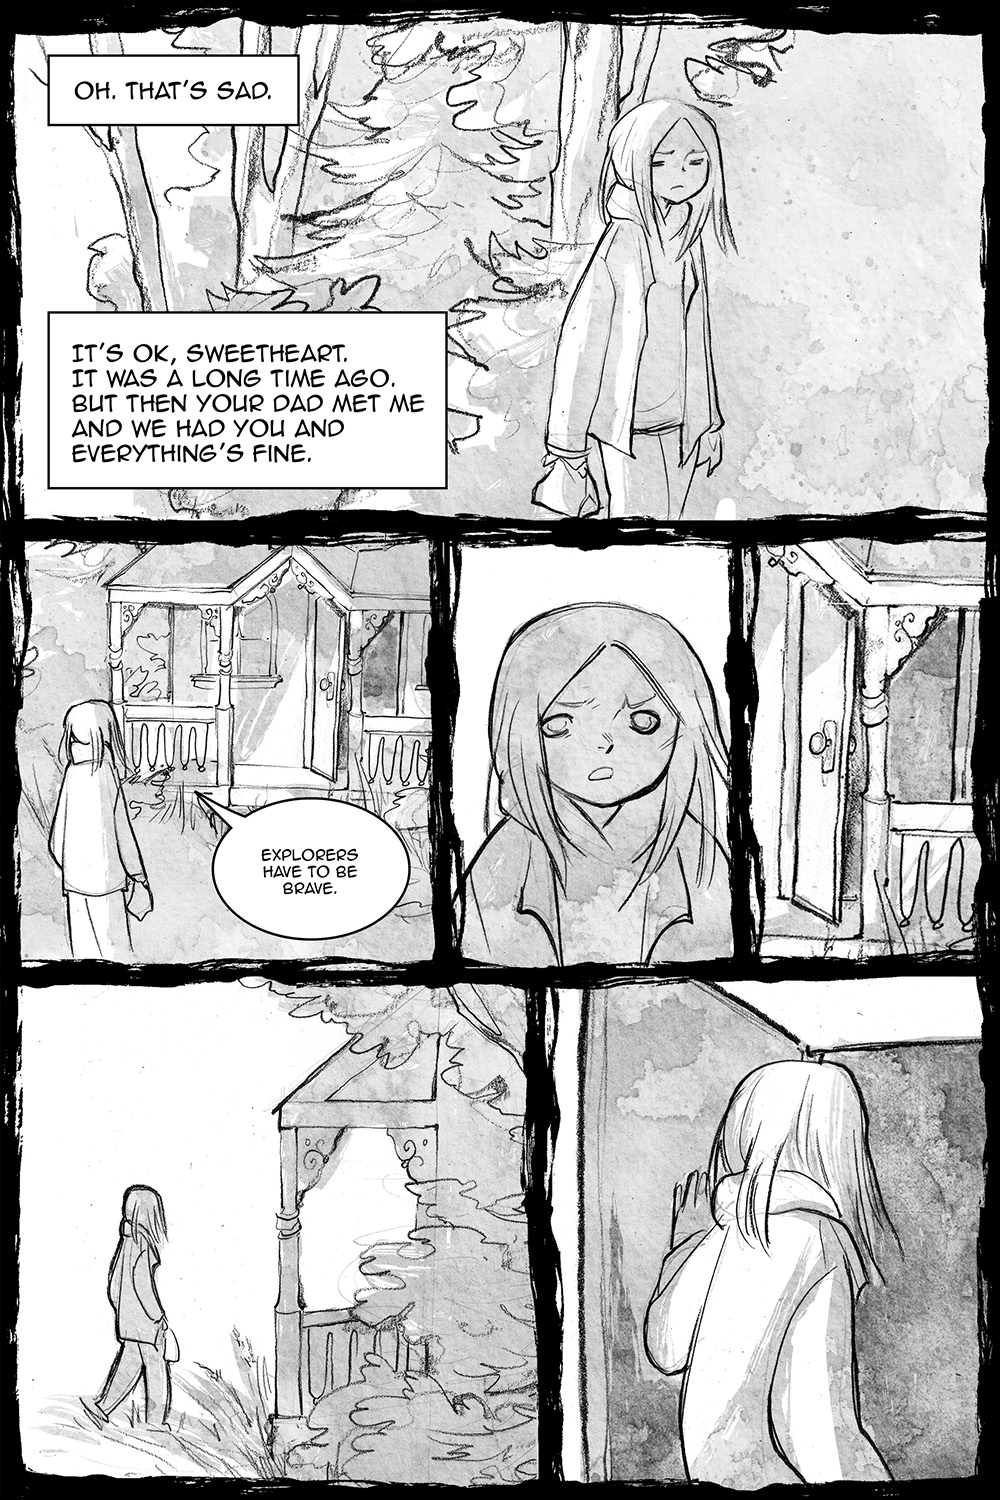 Doll's House, page 12, by Sam Costello and Savannah Horrocks